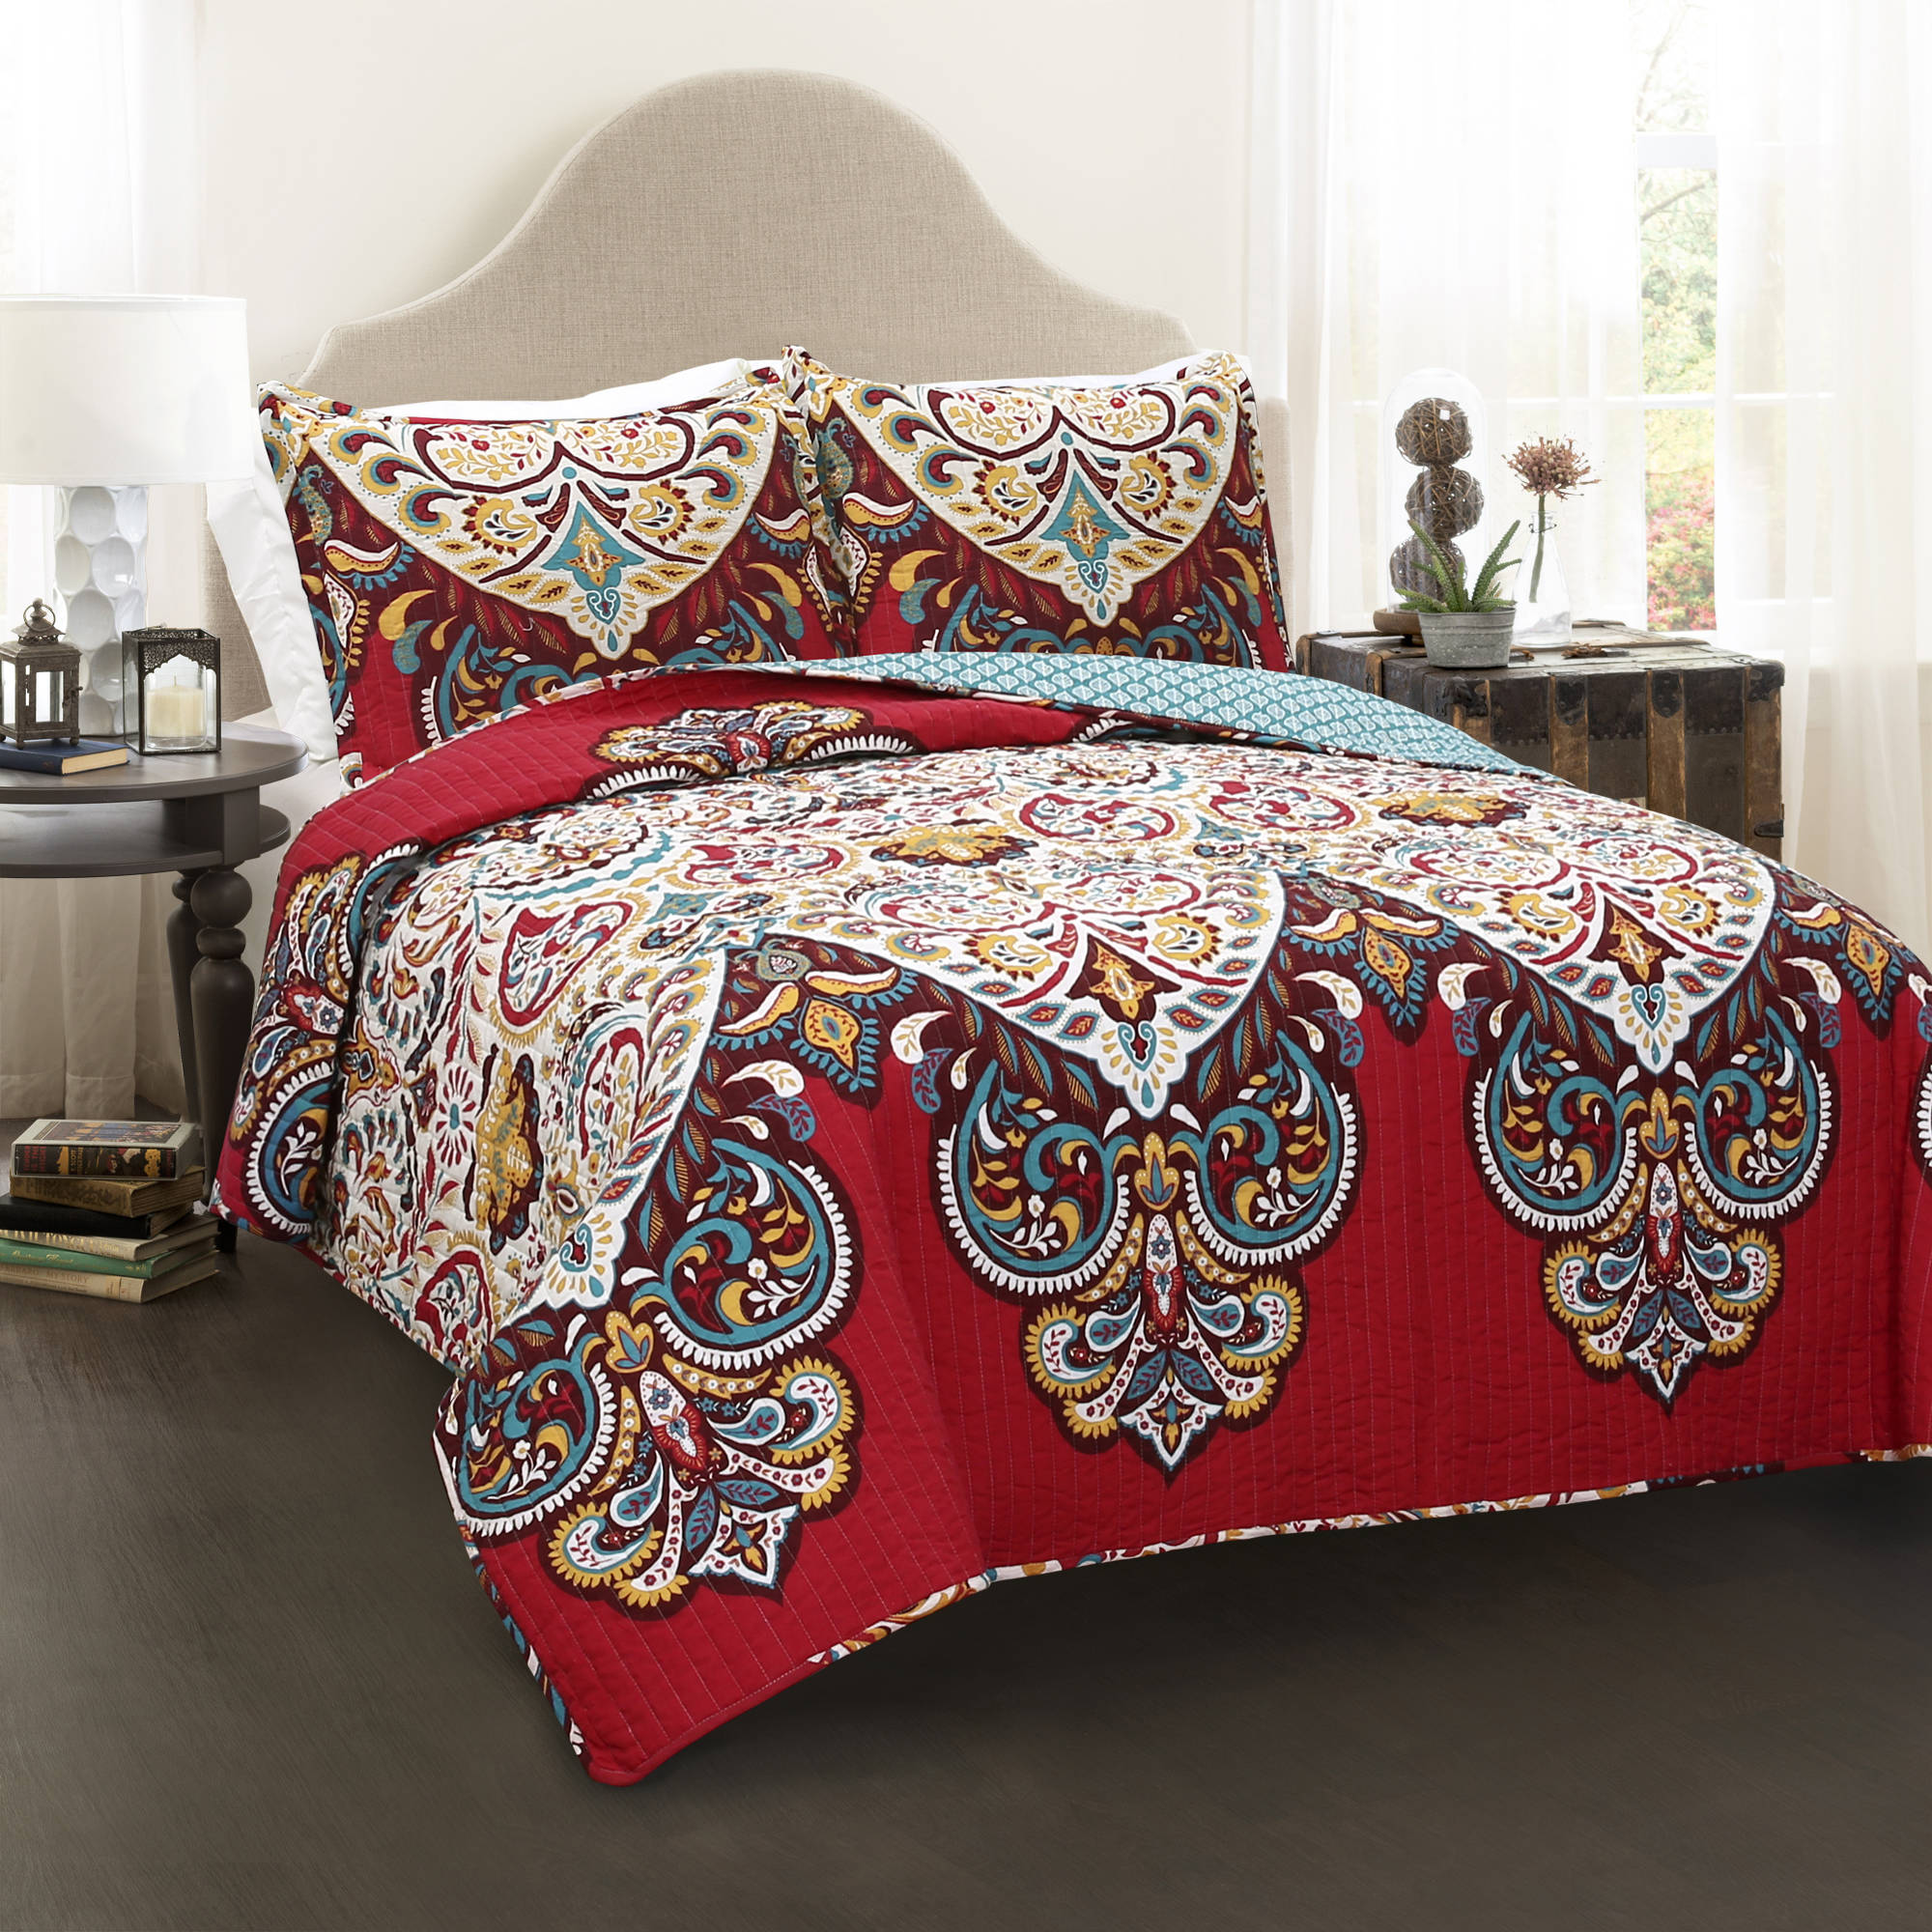 Boho Chic Quilt 3pc Set by Generic